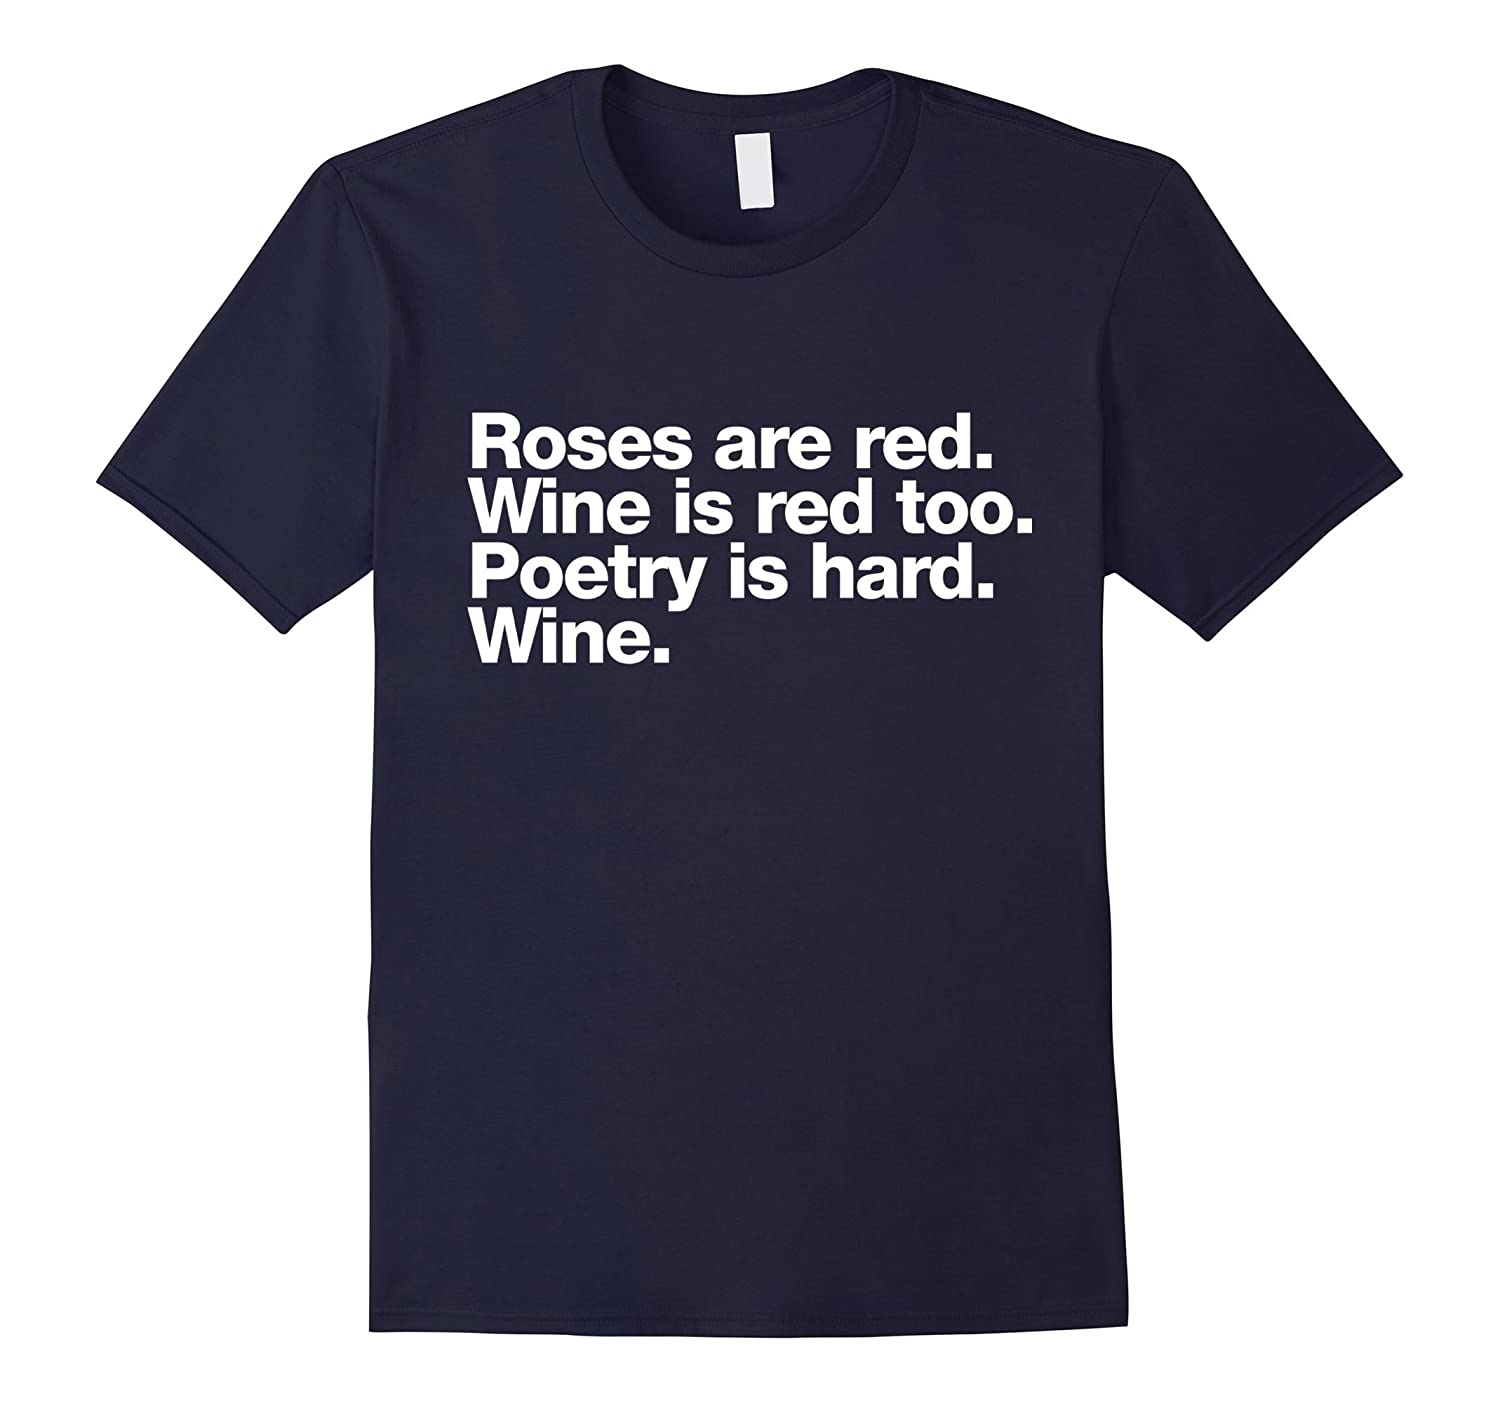 Wine is red too | Simple typography design-Art